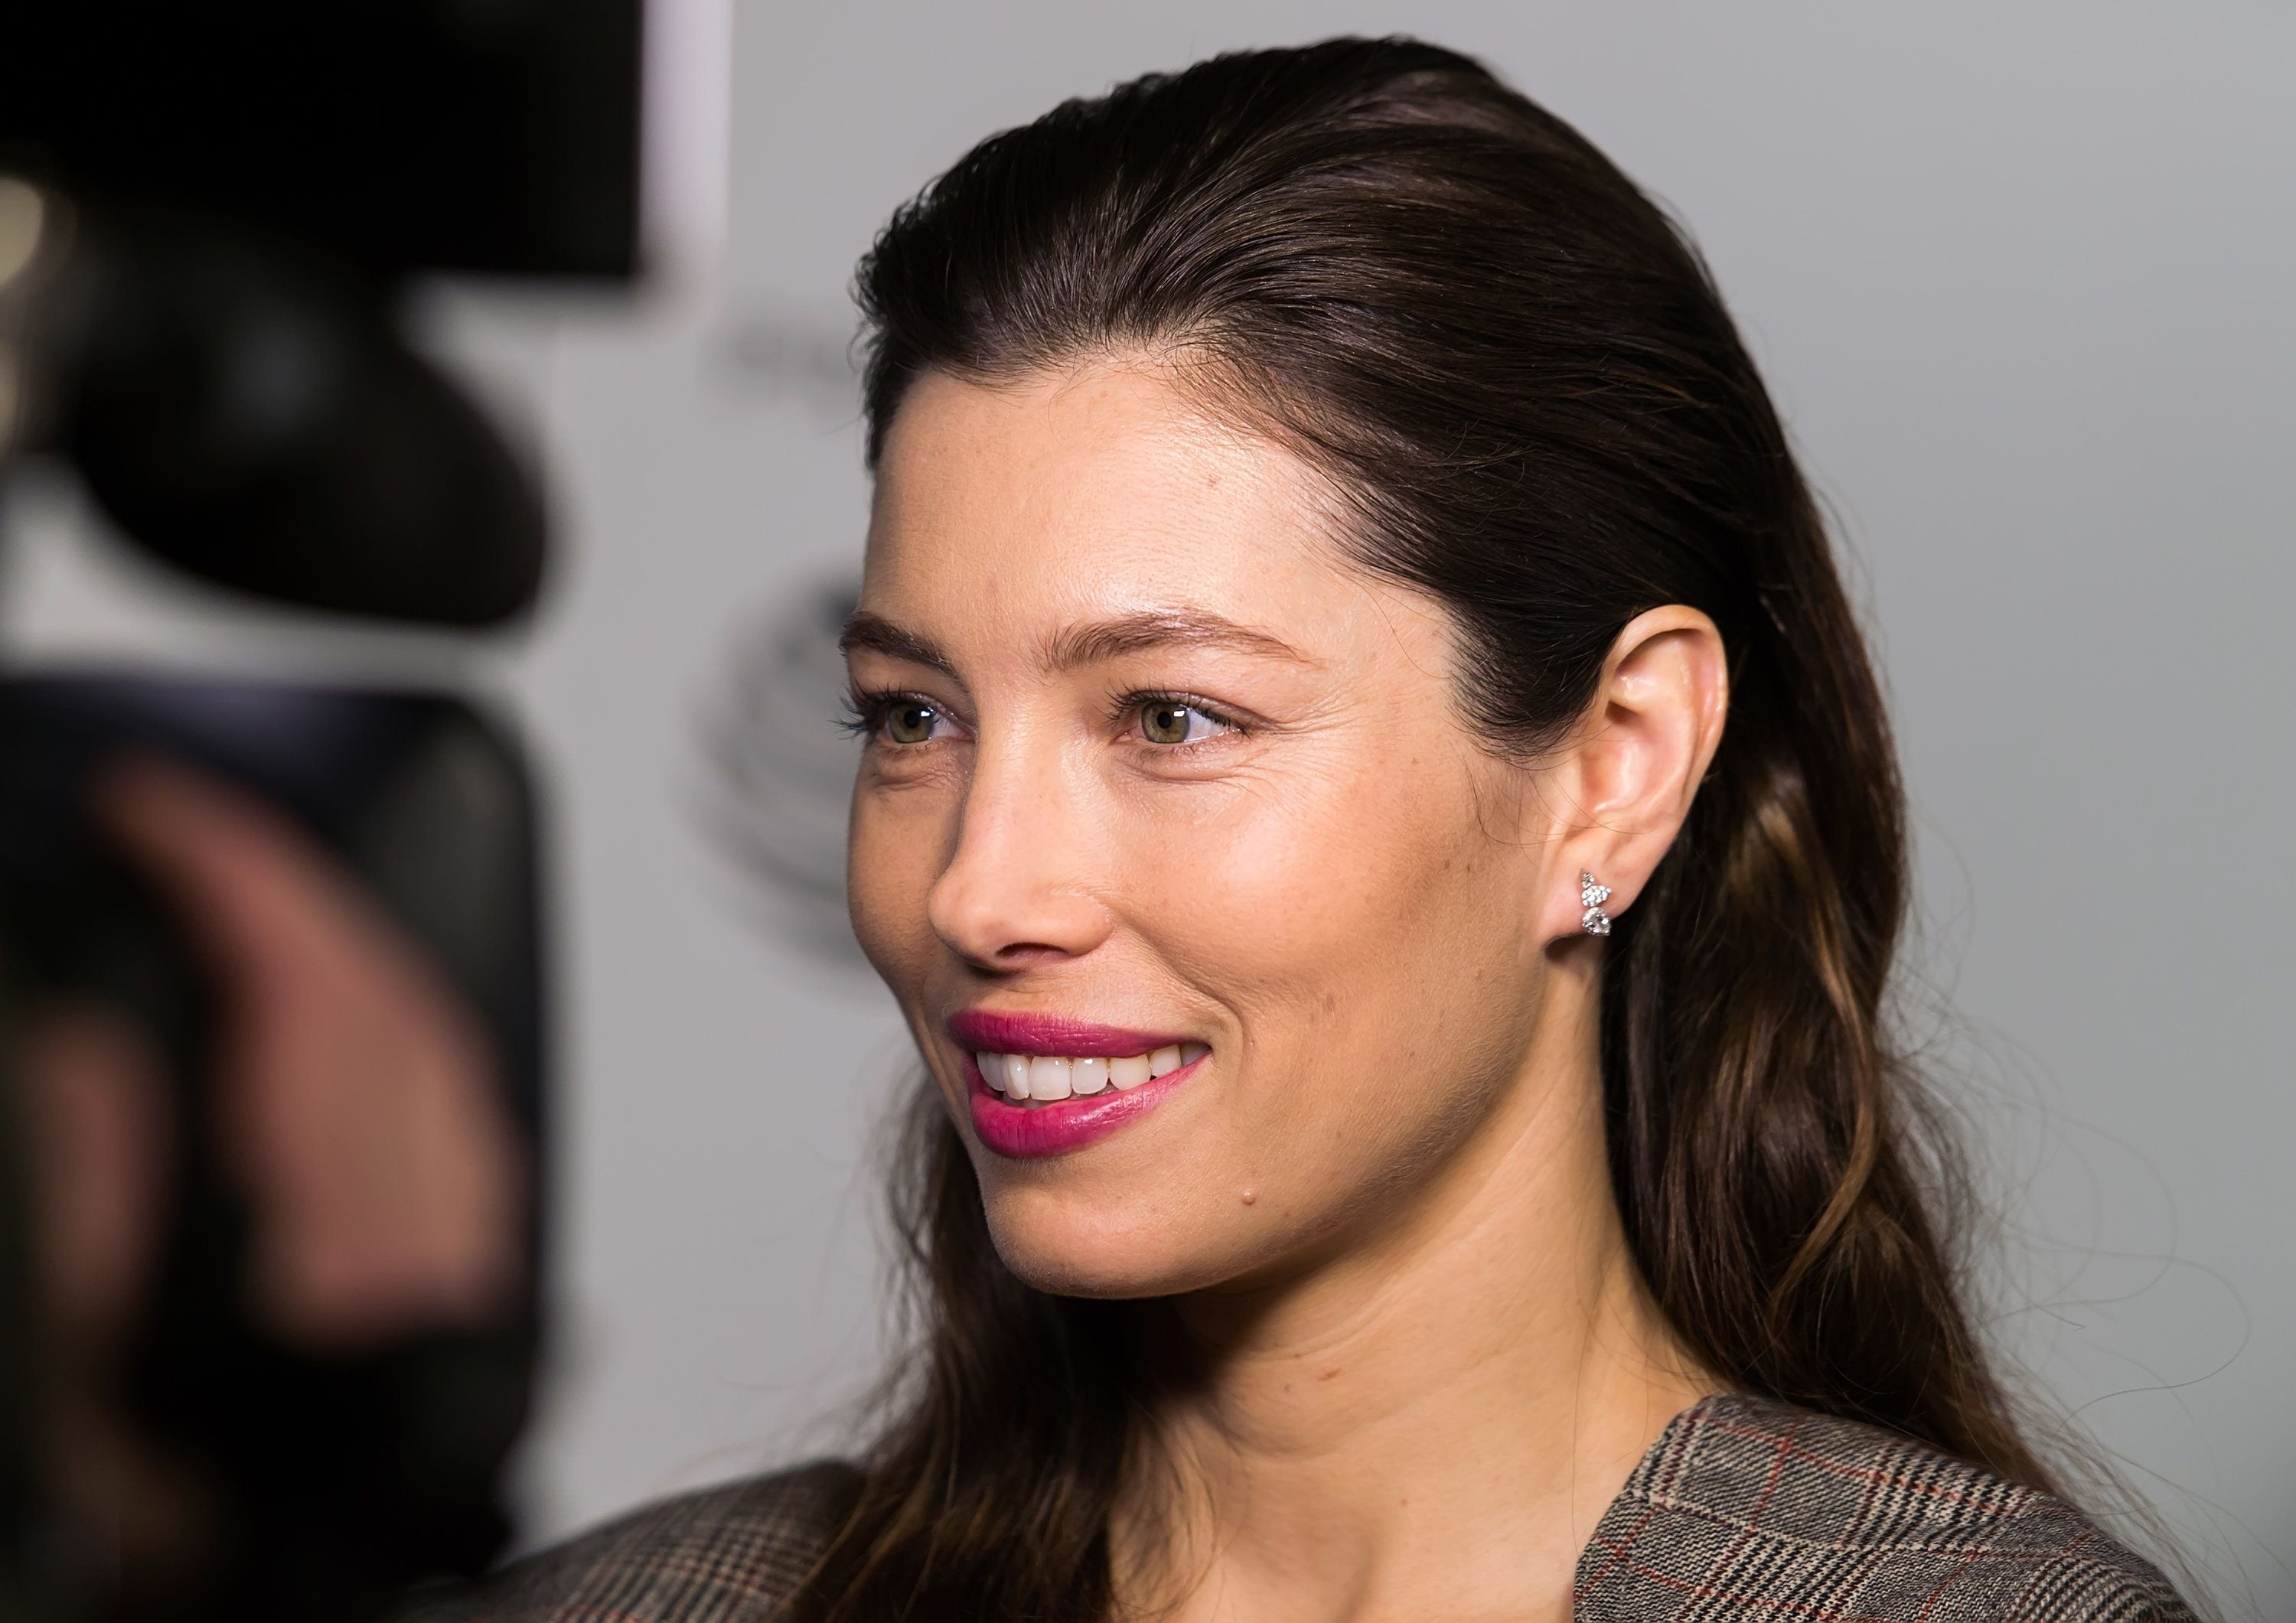 NEW YORK, NY - APRIL 25:  Actress Jessica Biel attends 'The Sinner' premiere during 2017 Tribeca Film Festival at SVA Theatre on April 25, 2017 in New York City.  (Photo by Gilbert Carrasquillo/FilmMagic)